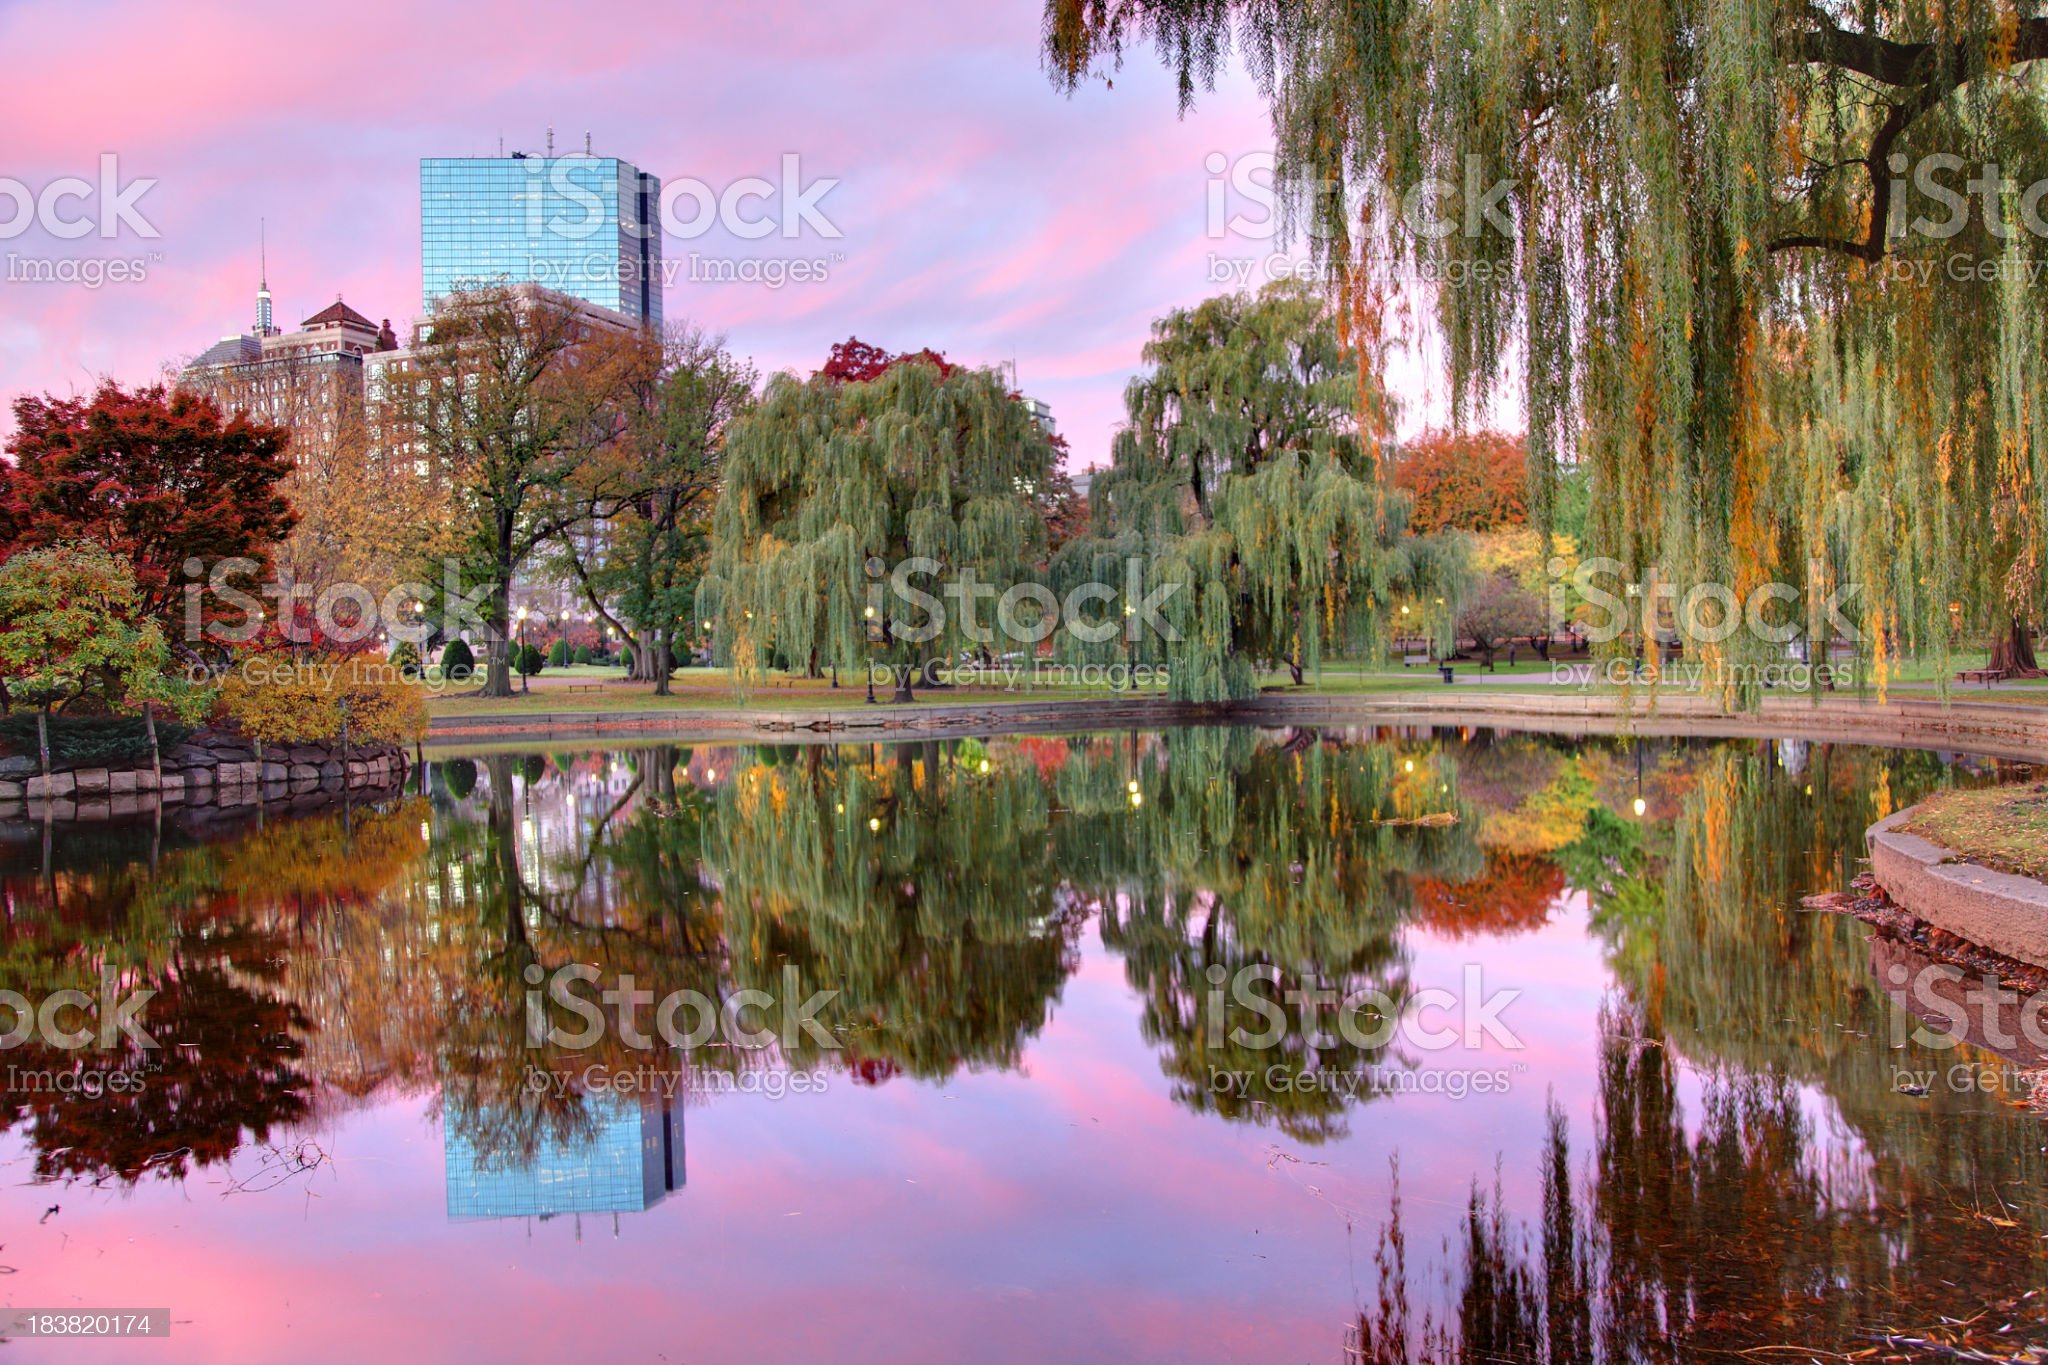 Boston Reflecting on a Small Pond royalty-free stock photo